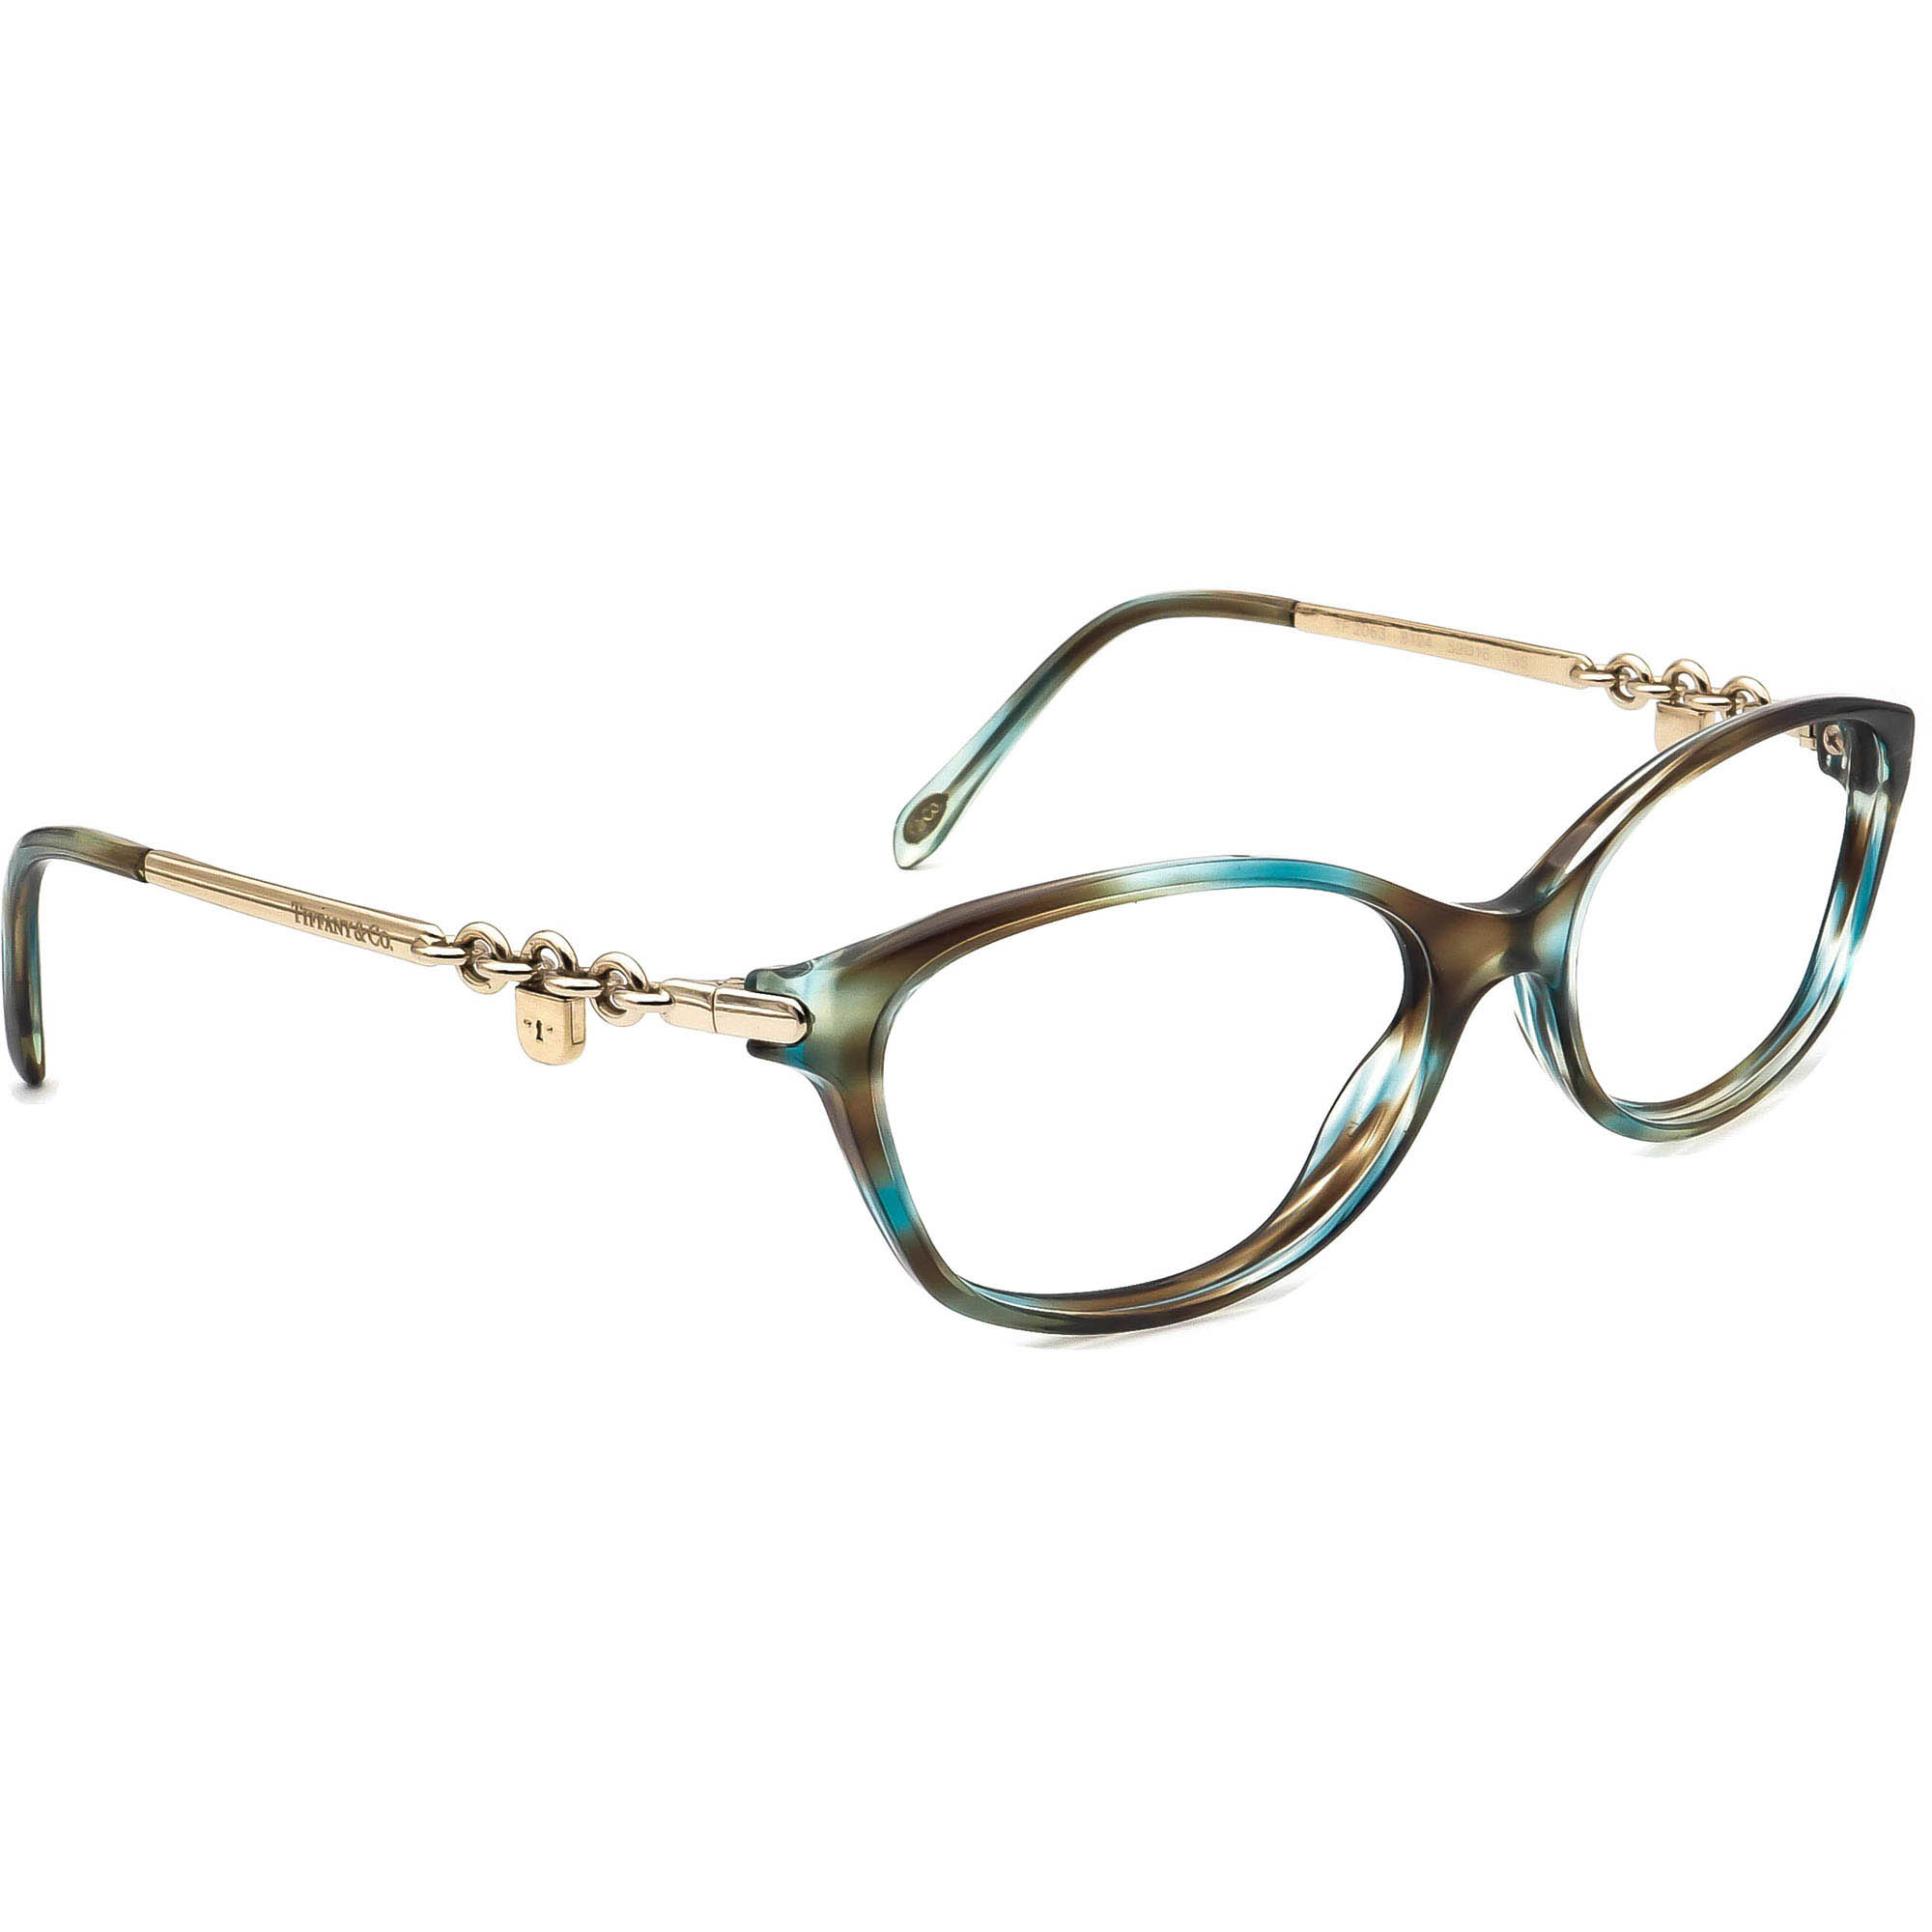 Tiffany & Co. TF 2063 8124 Eyeglasses